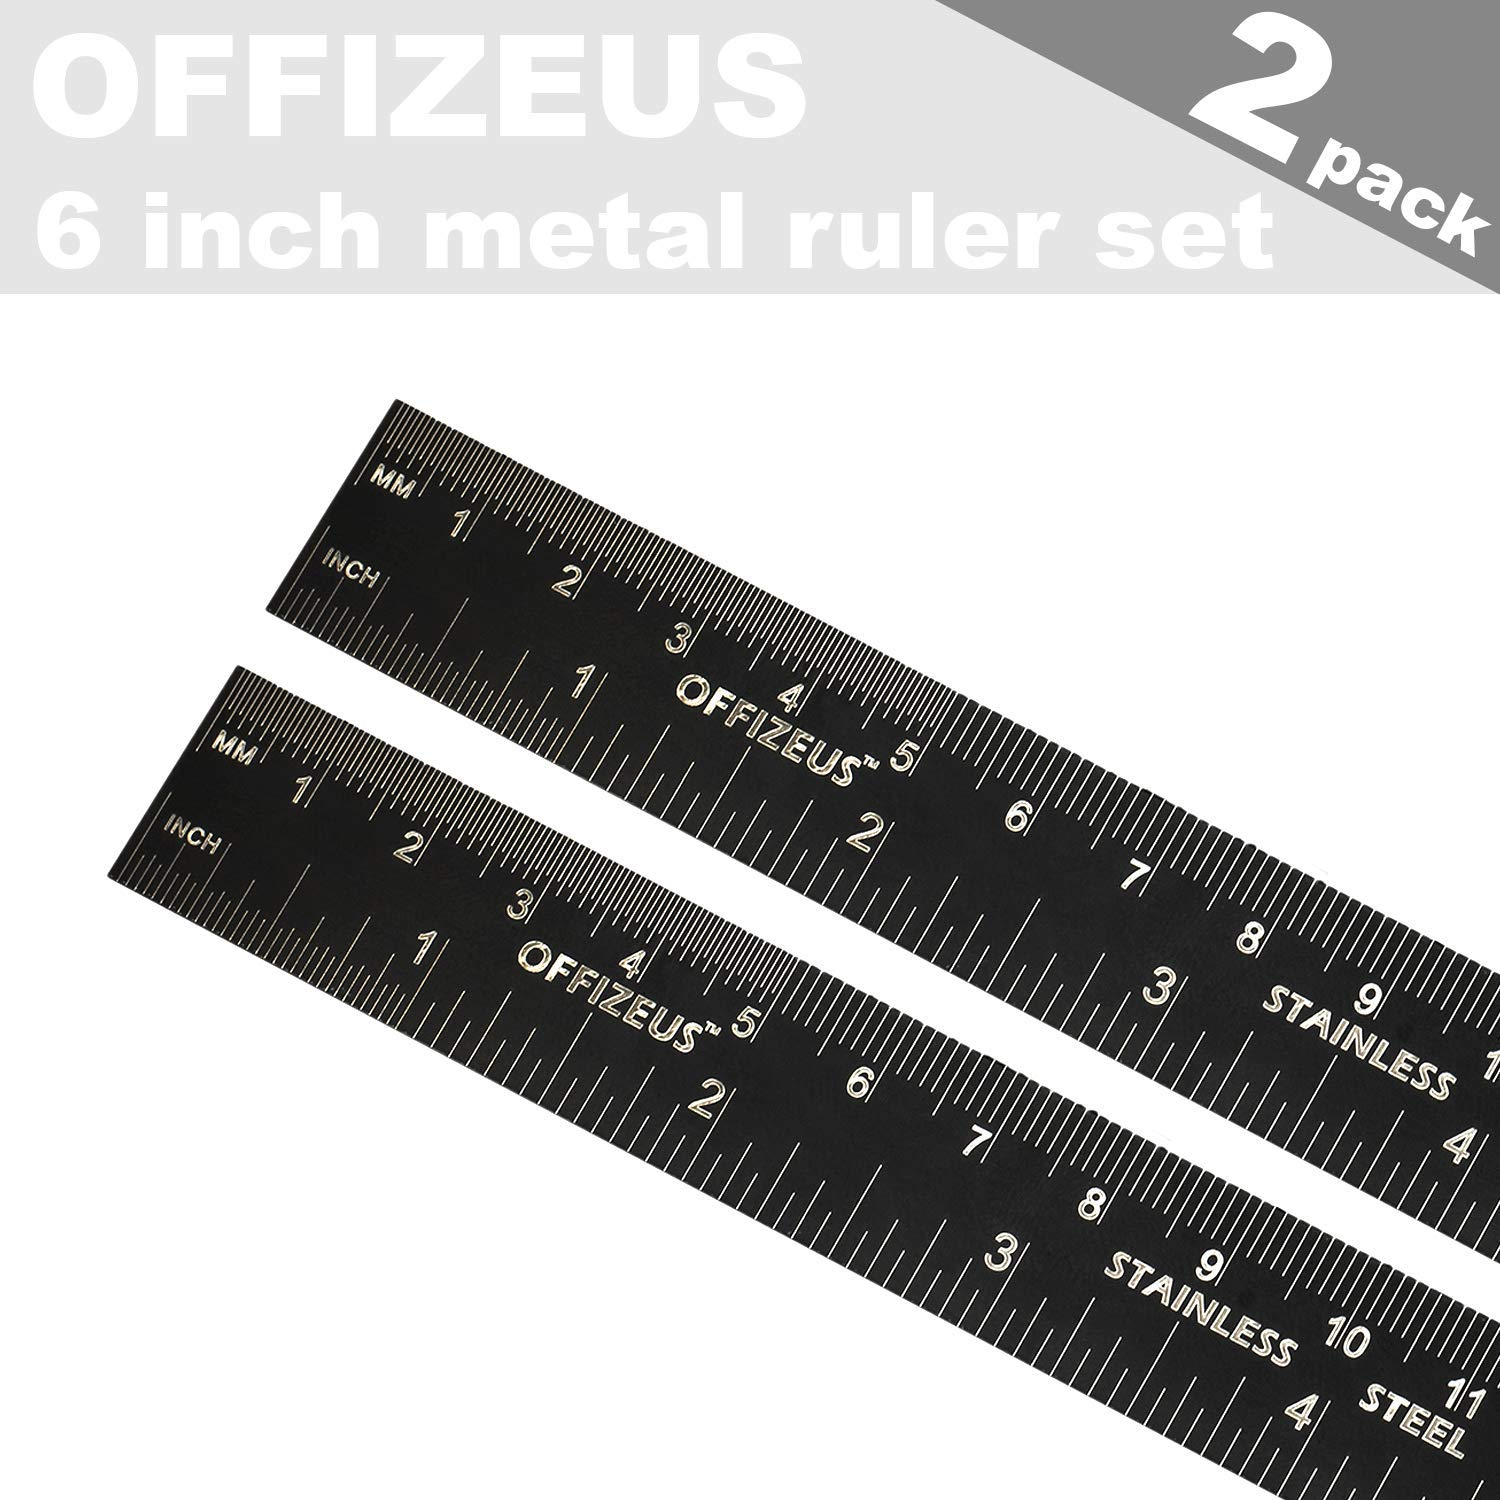 OFFIZEUS Metal Rulers 6 Inch Steel Rulers with Inches and Centimeters Ideal Small Ruler for School and Office 2 Pack Includes Conversion Table